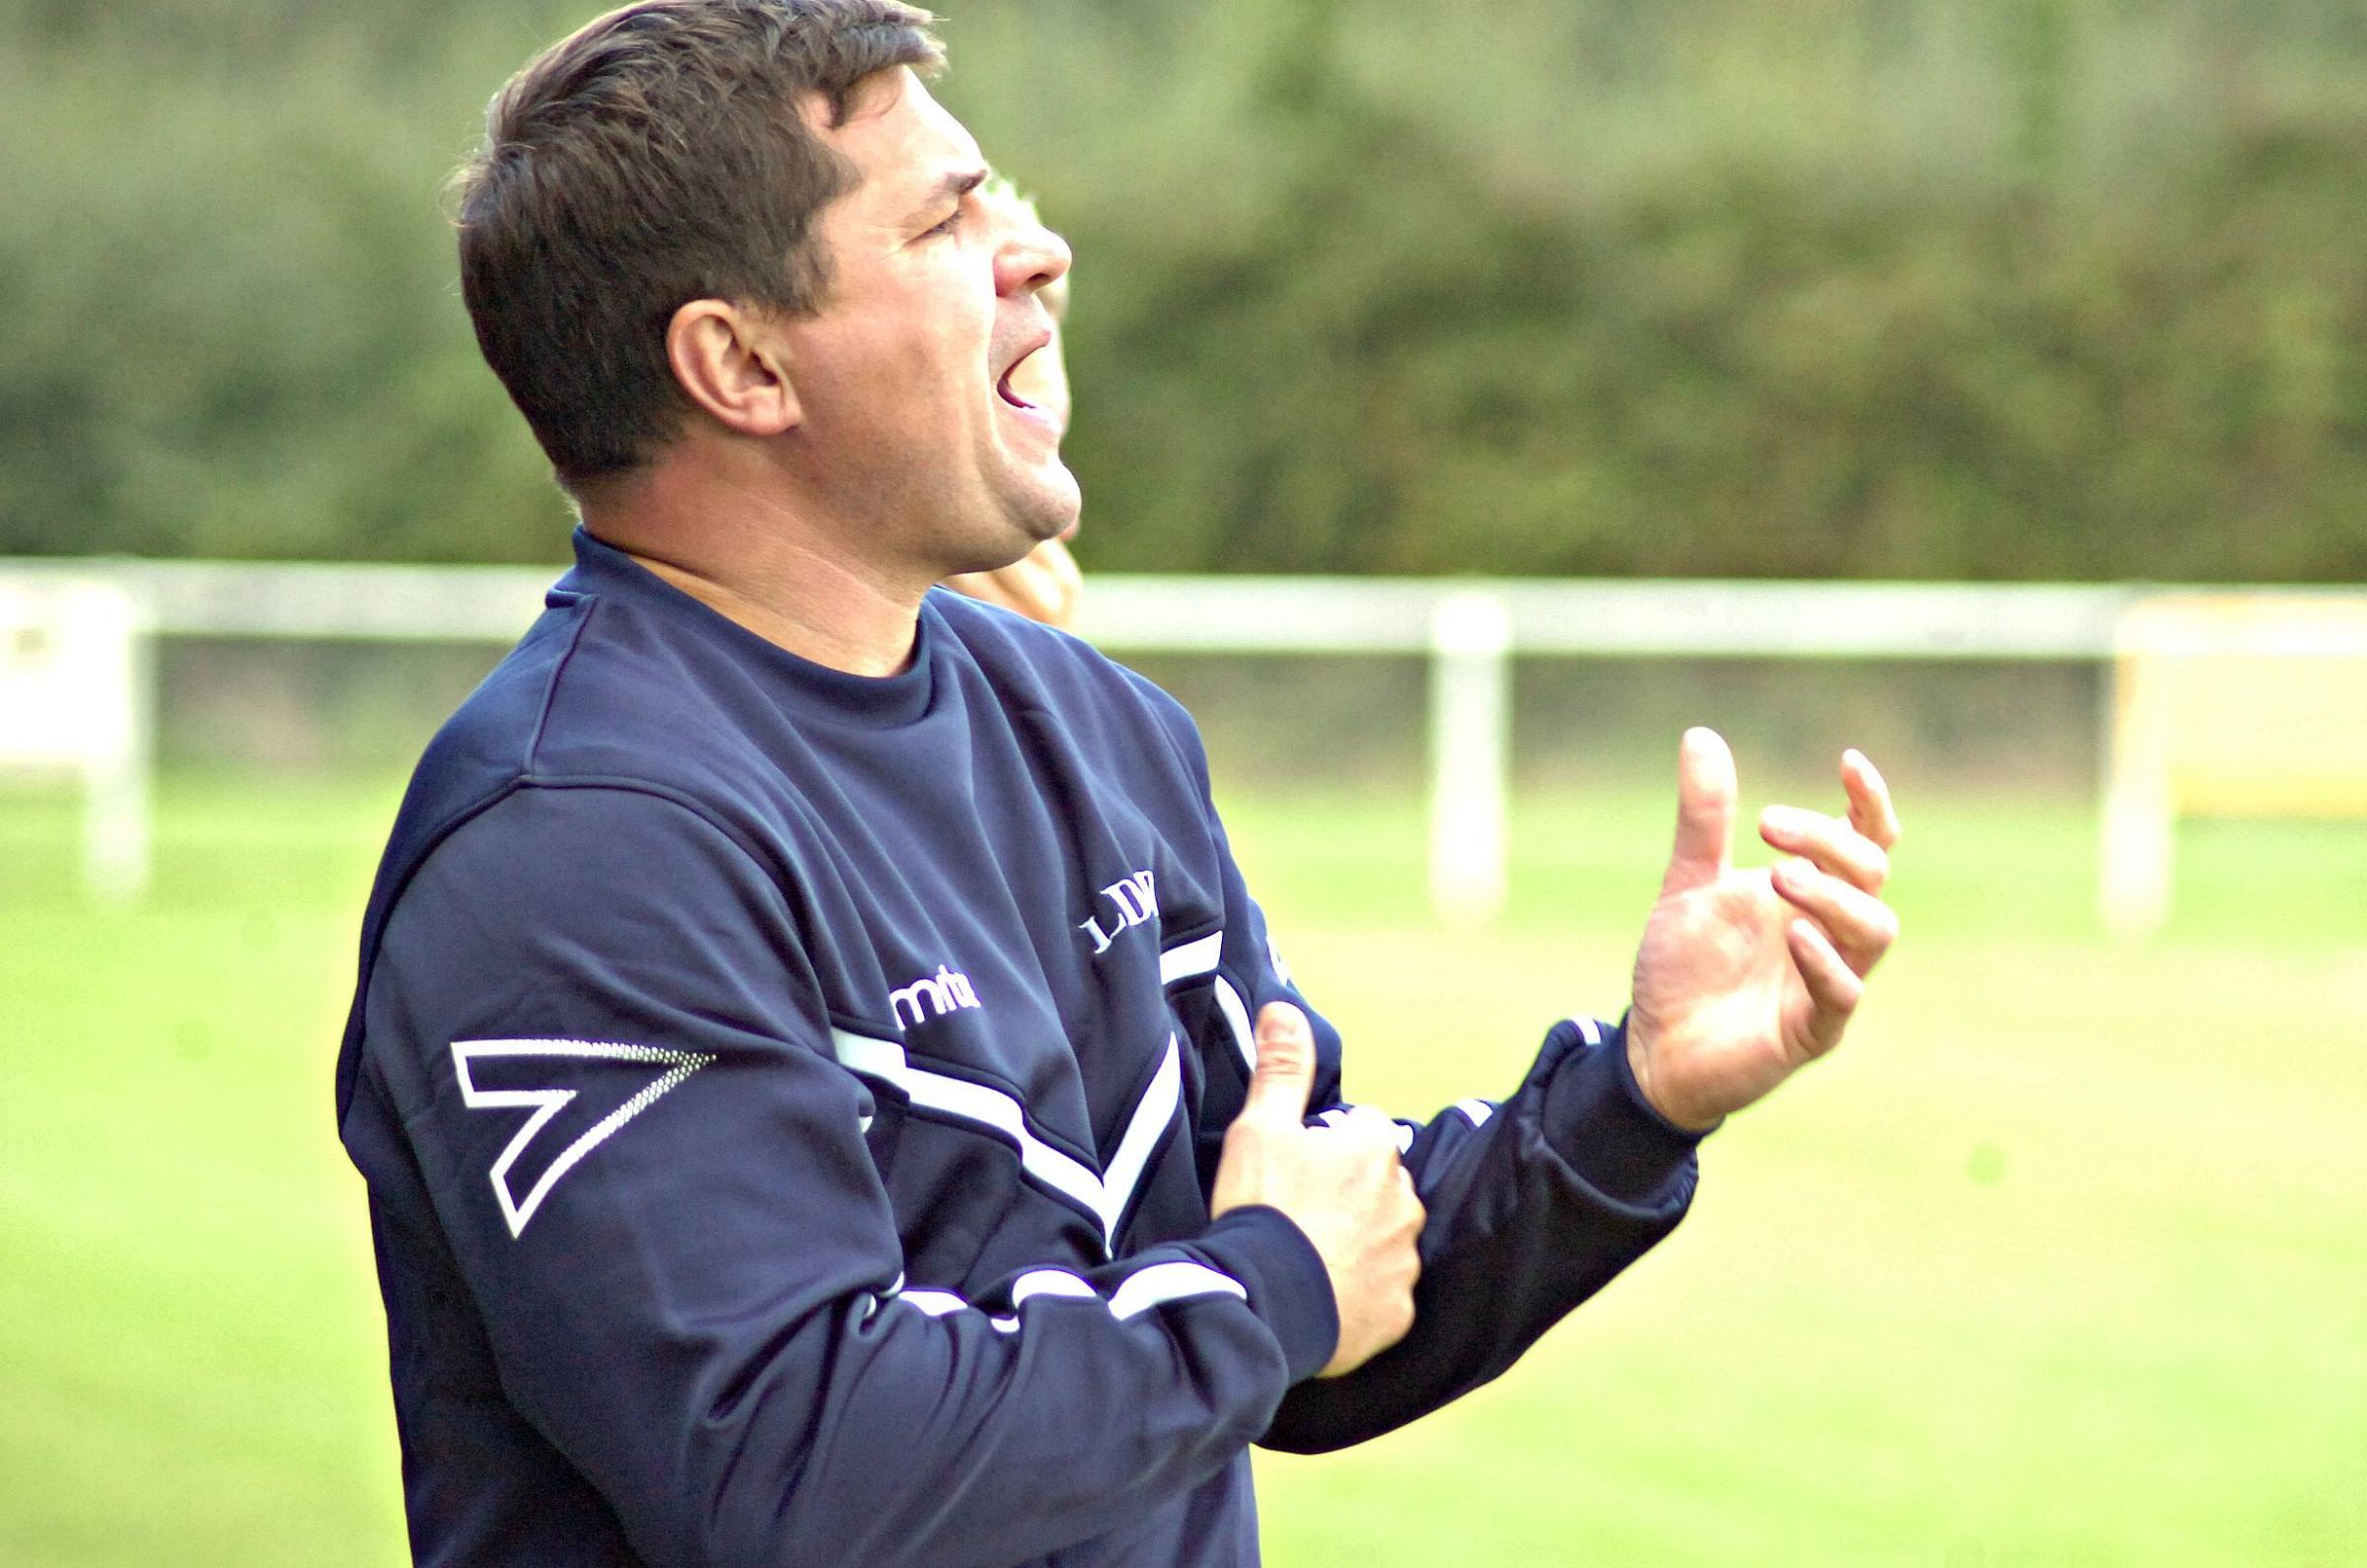 Slimbridge v Cirencester - Preview, Form Guide and Prediction